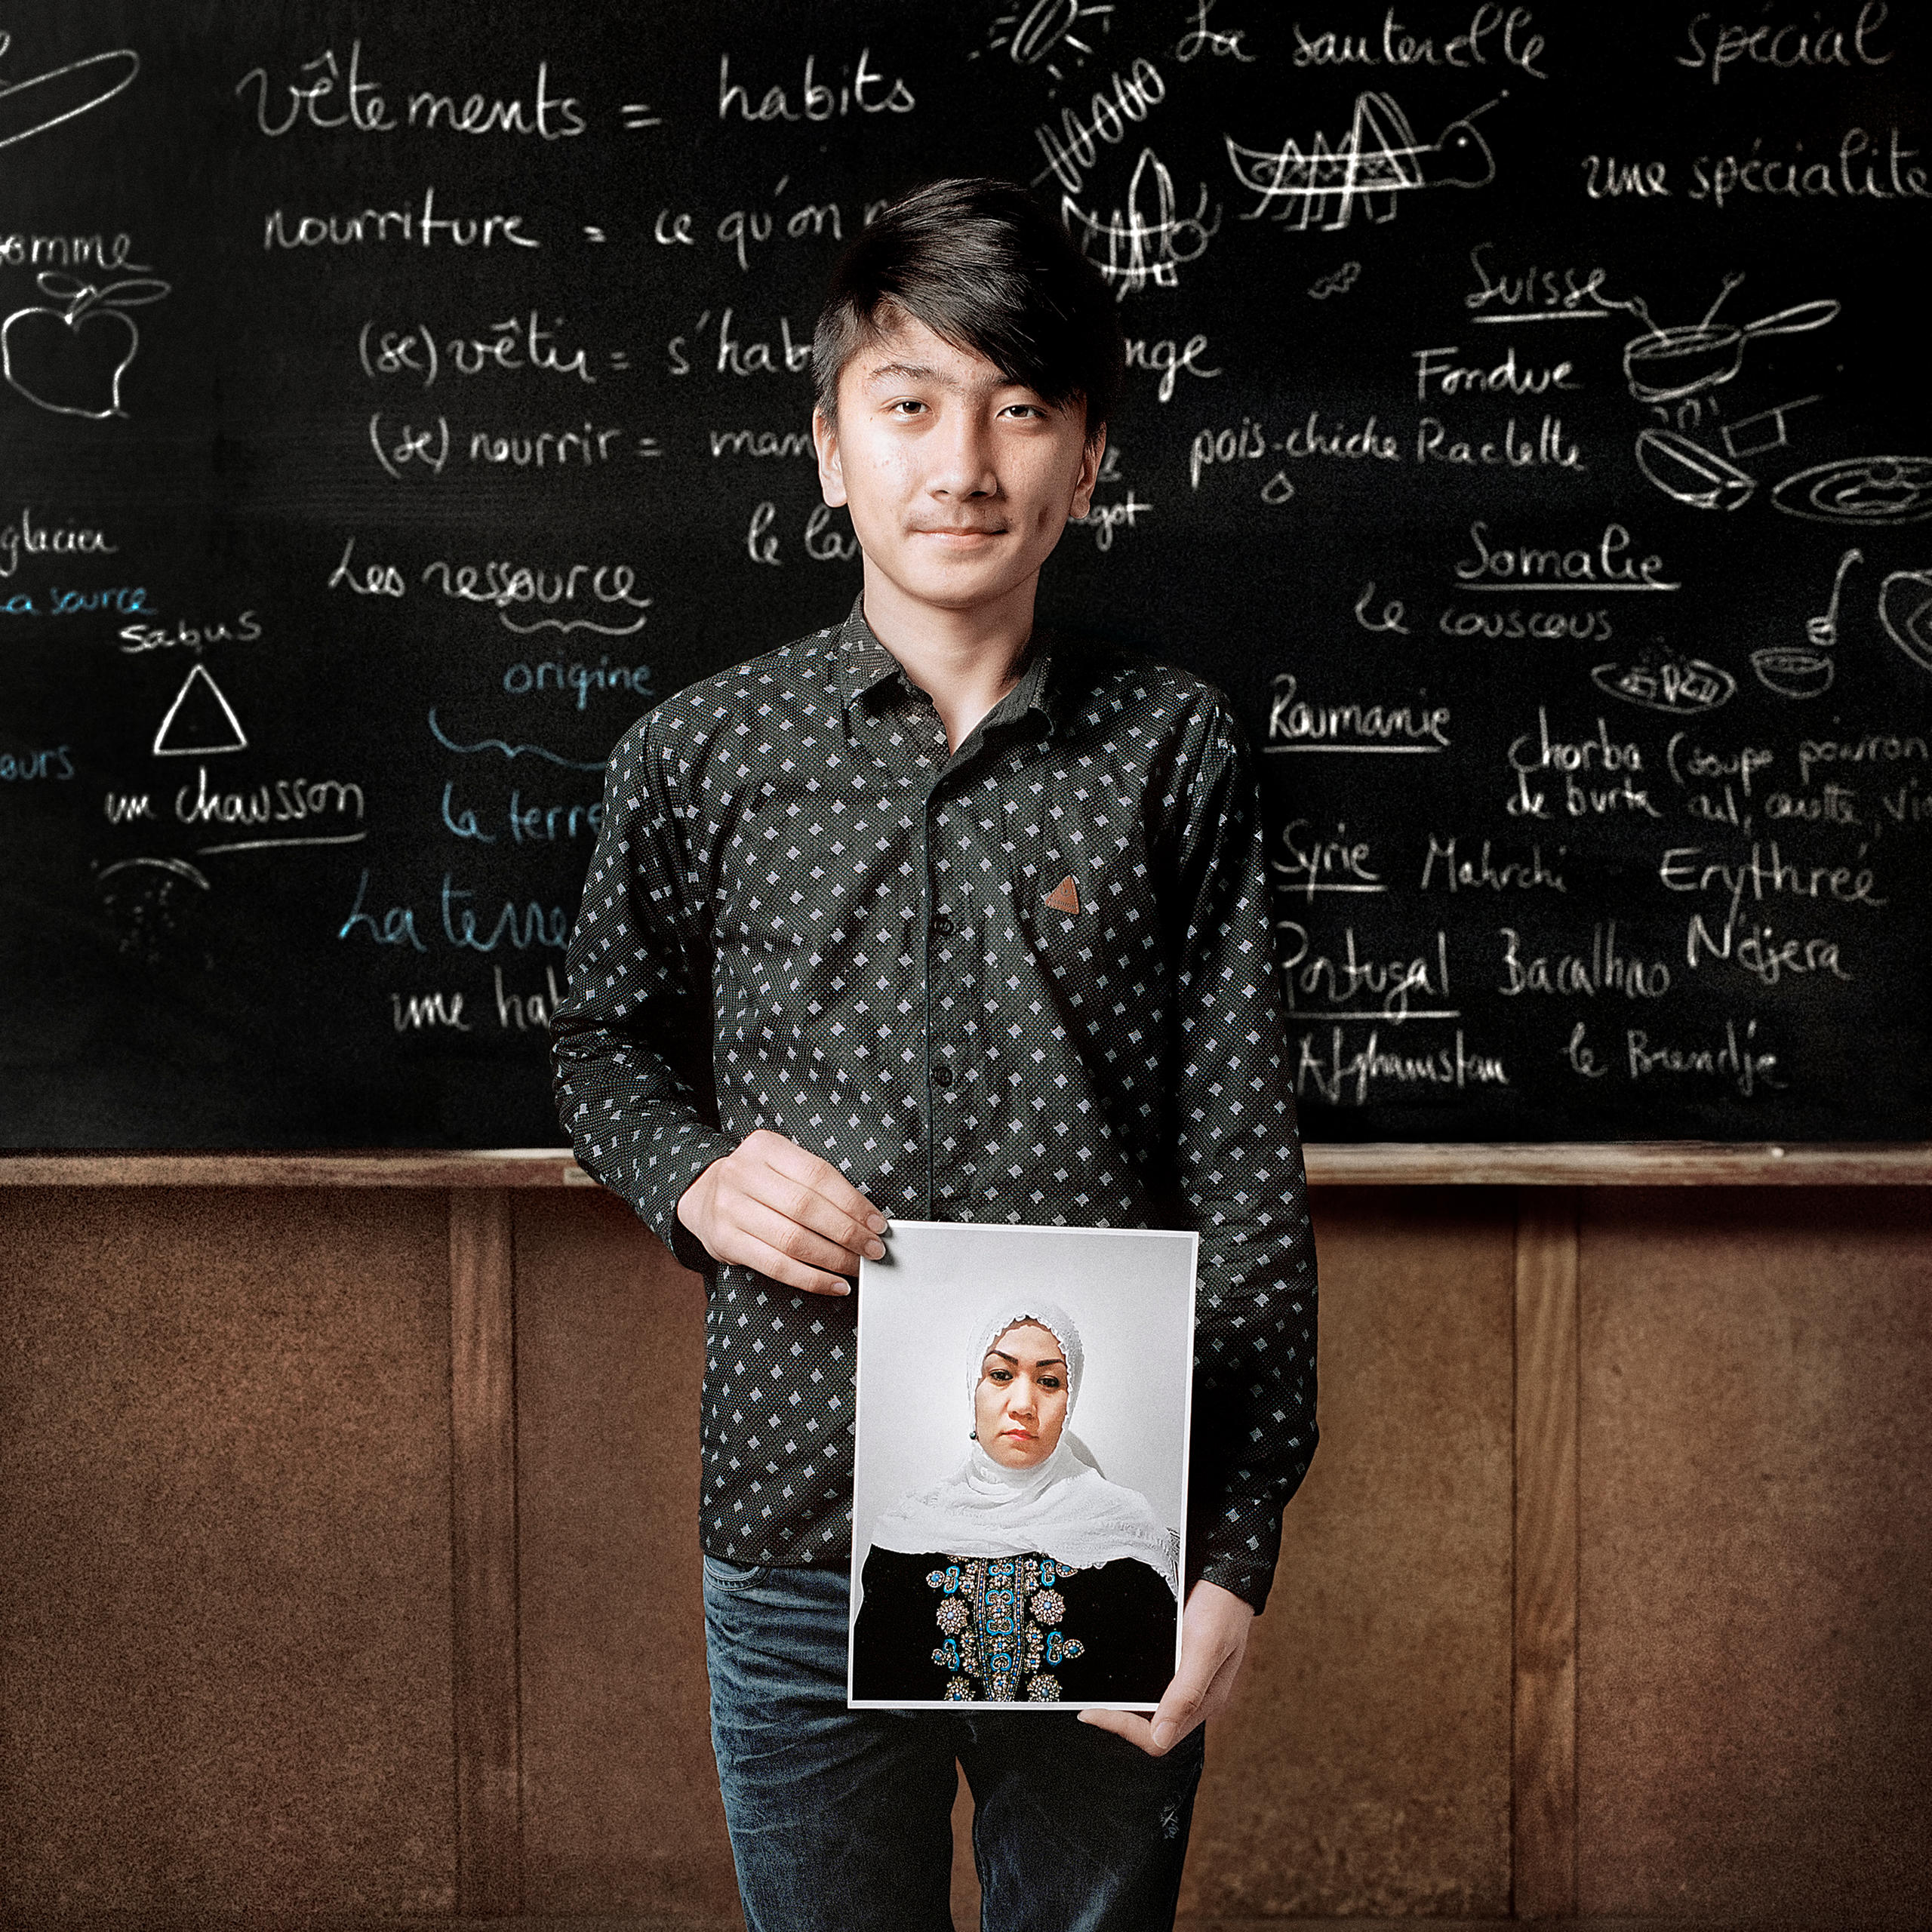 teenager stands in front of blackboard holding a photo